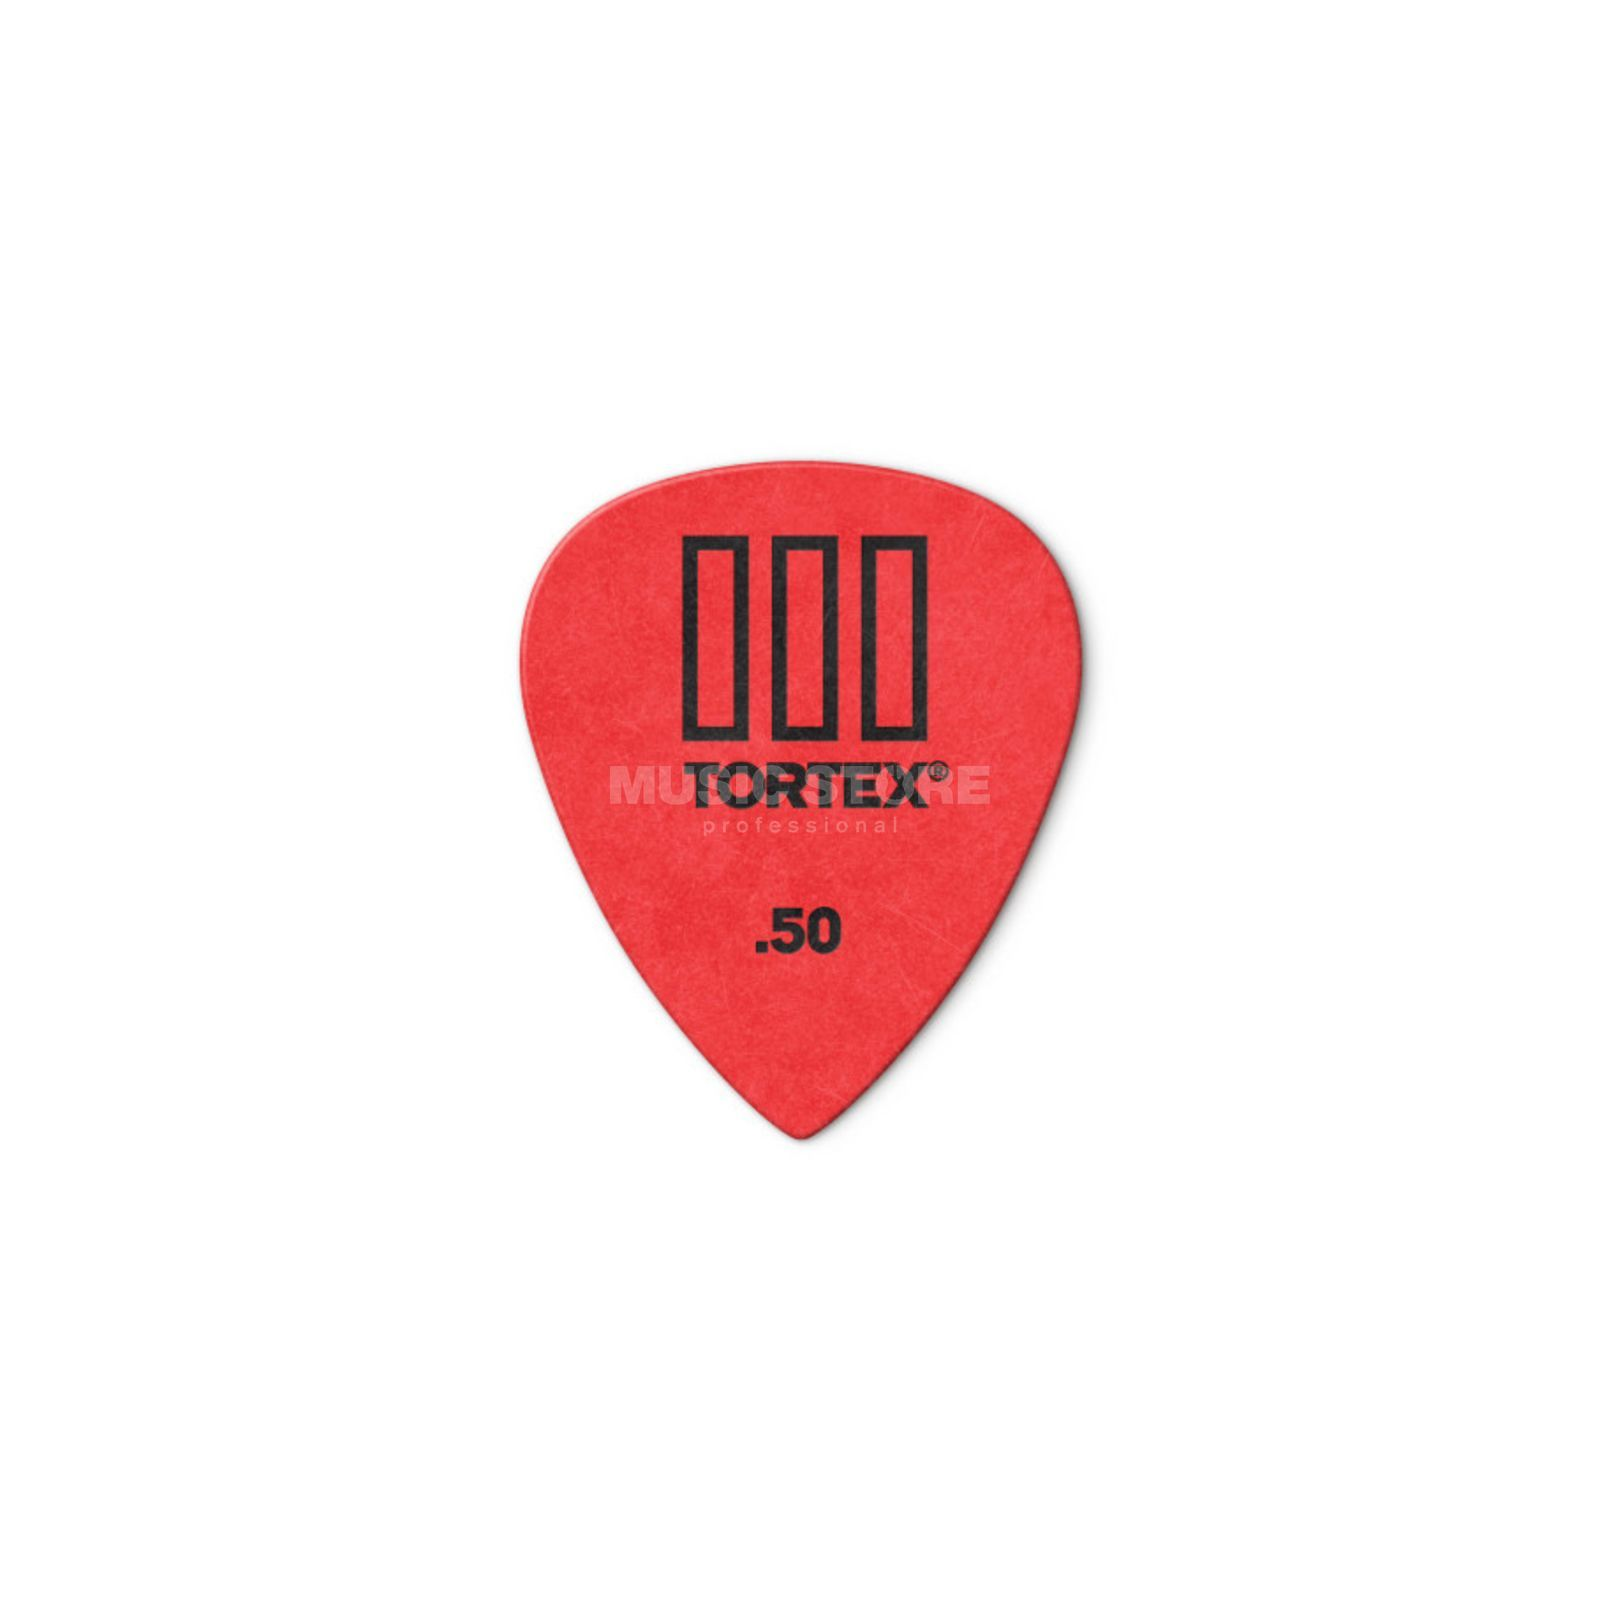 Dunlop Tortex III 462 Picks 0,50 72-Pack Produktbillede